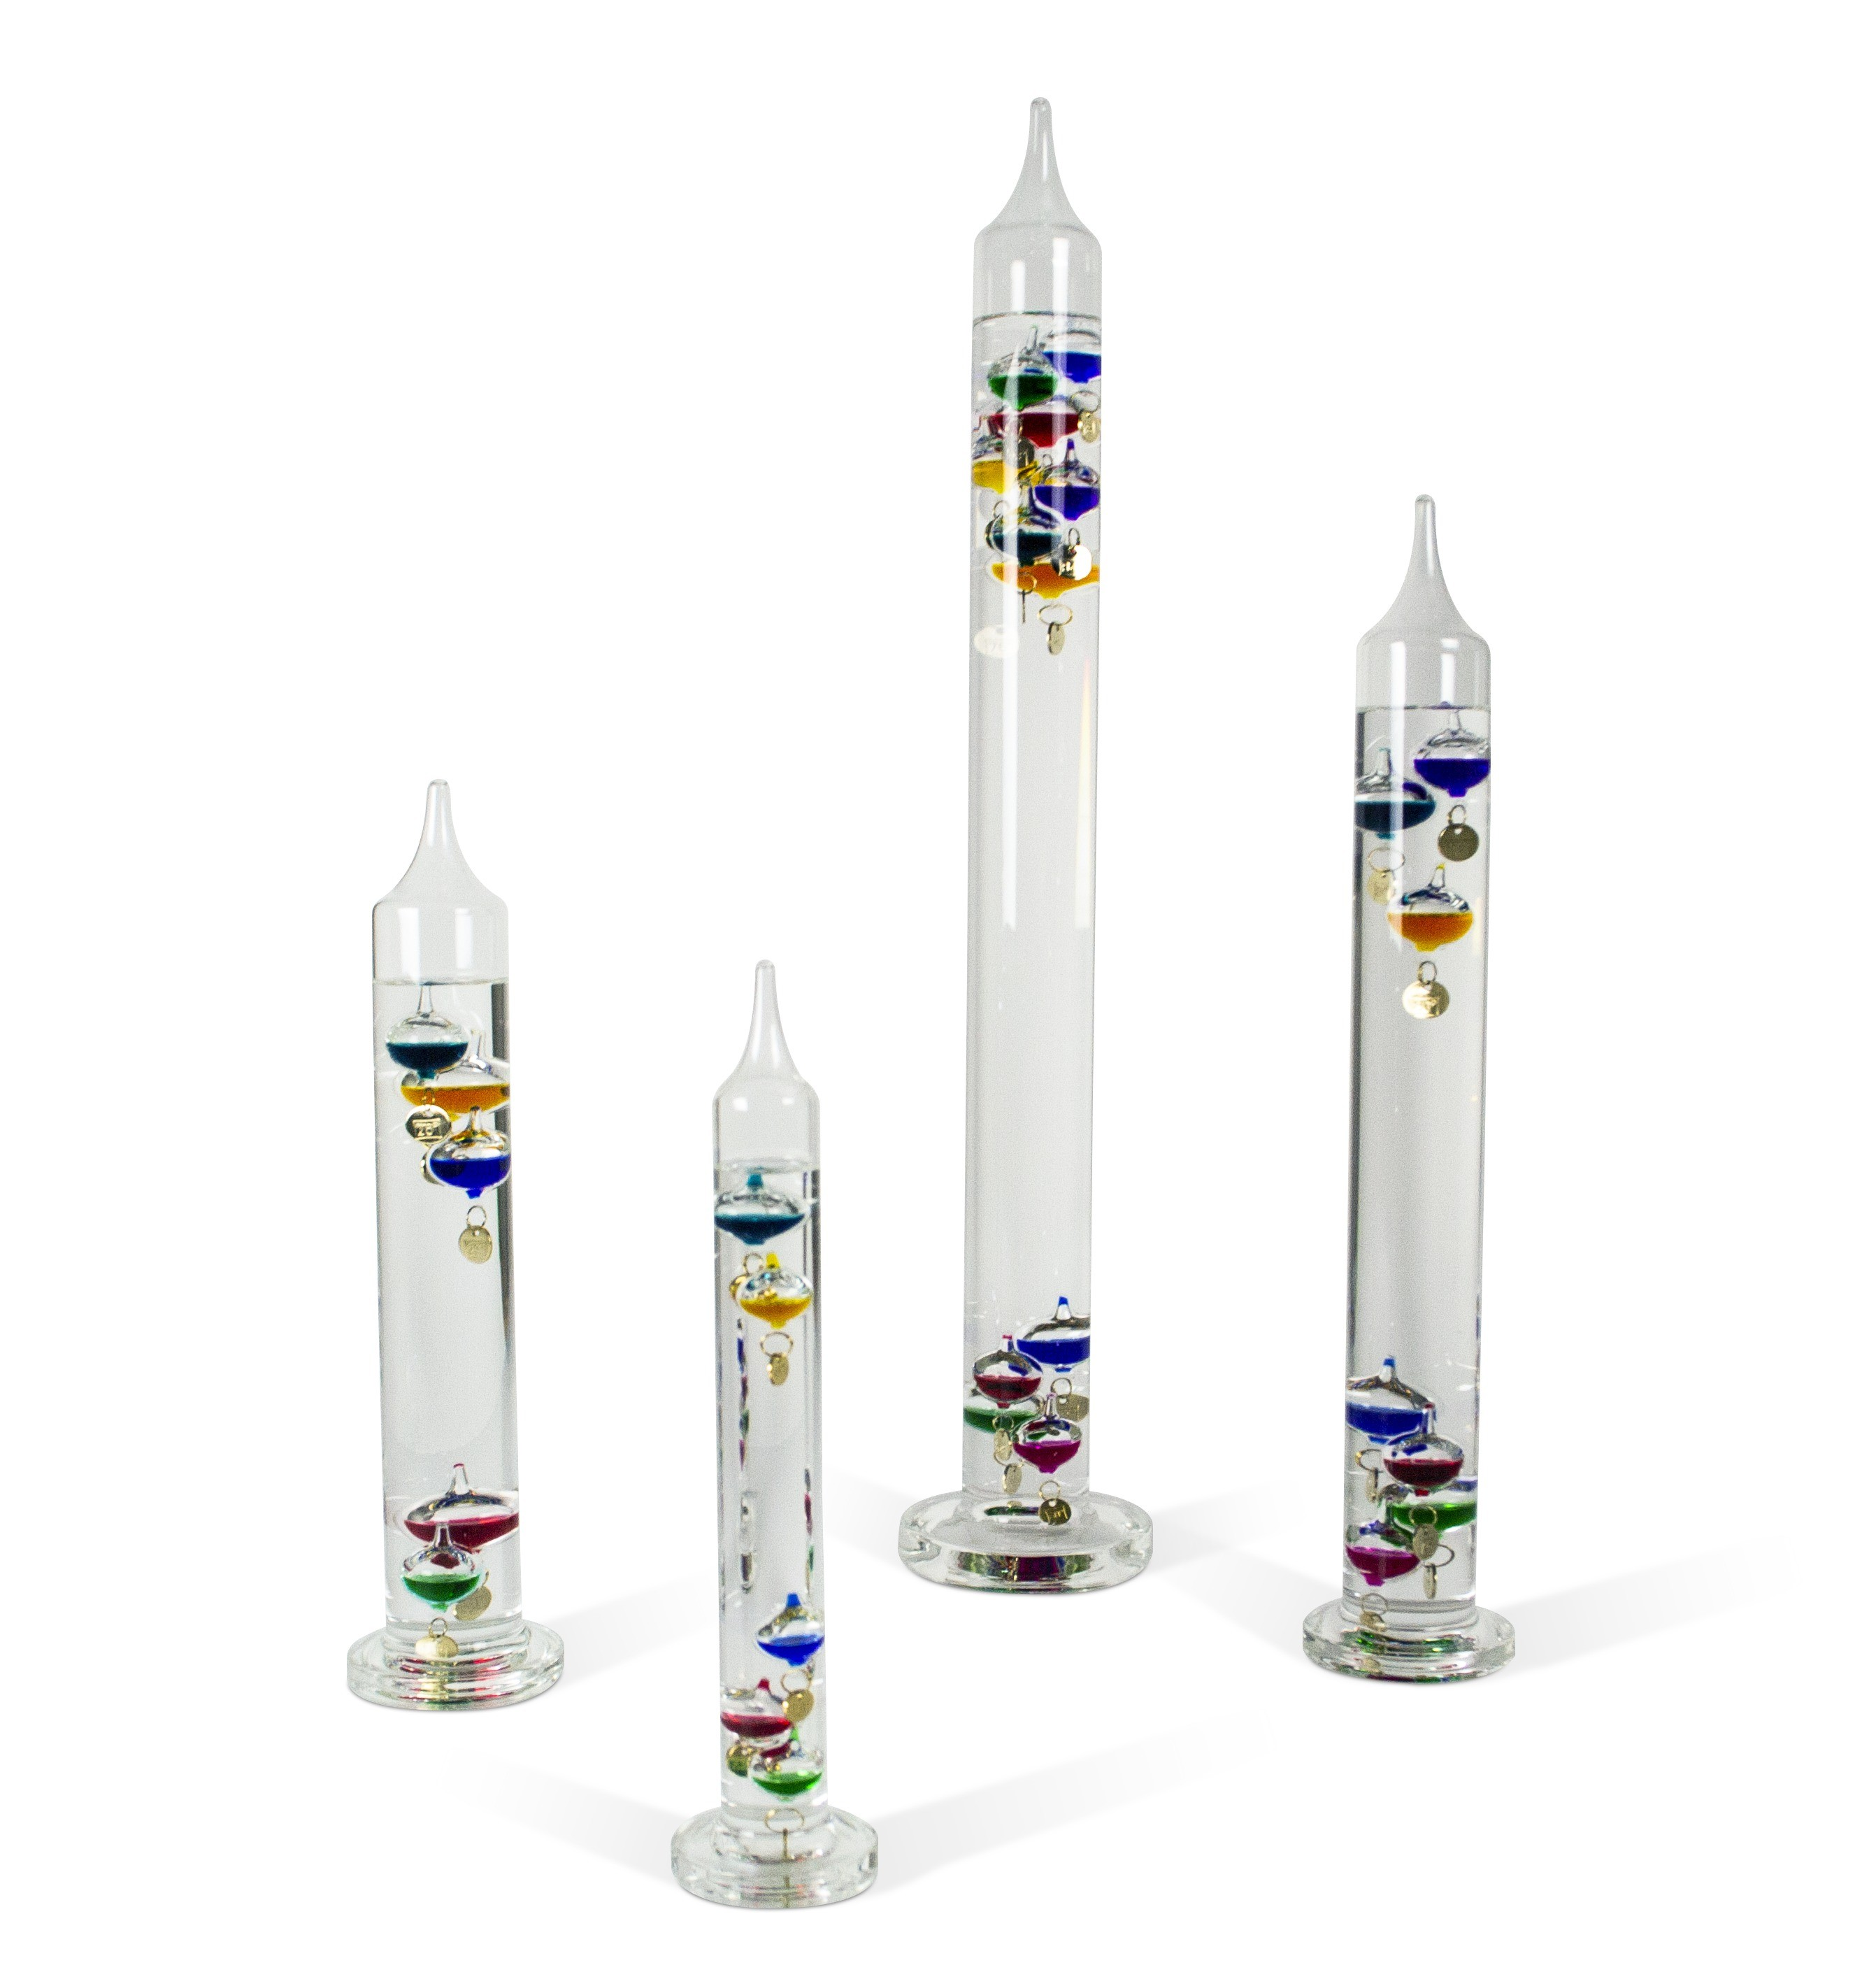 H-B DURAC Galileo Thermometers